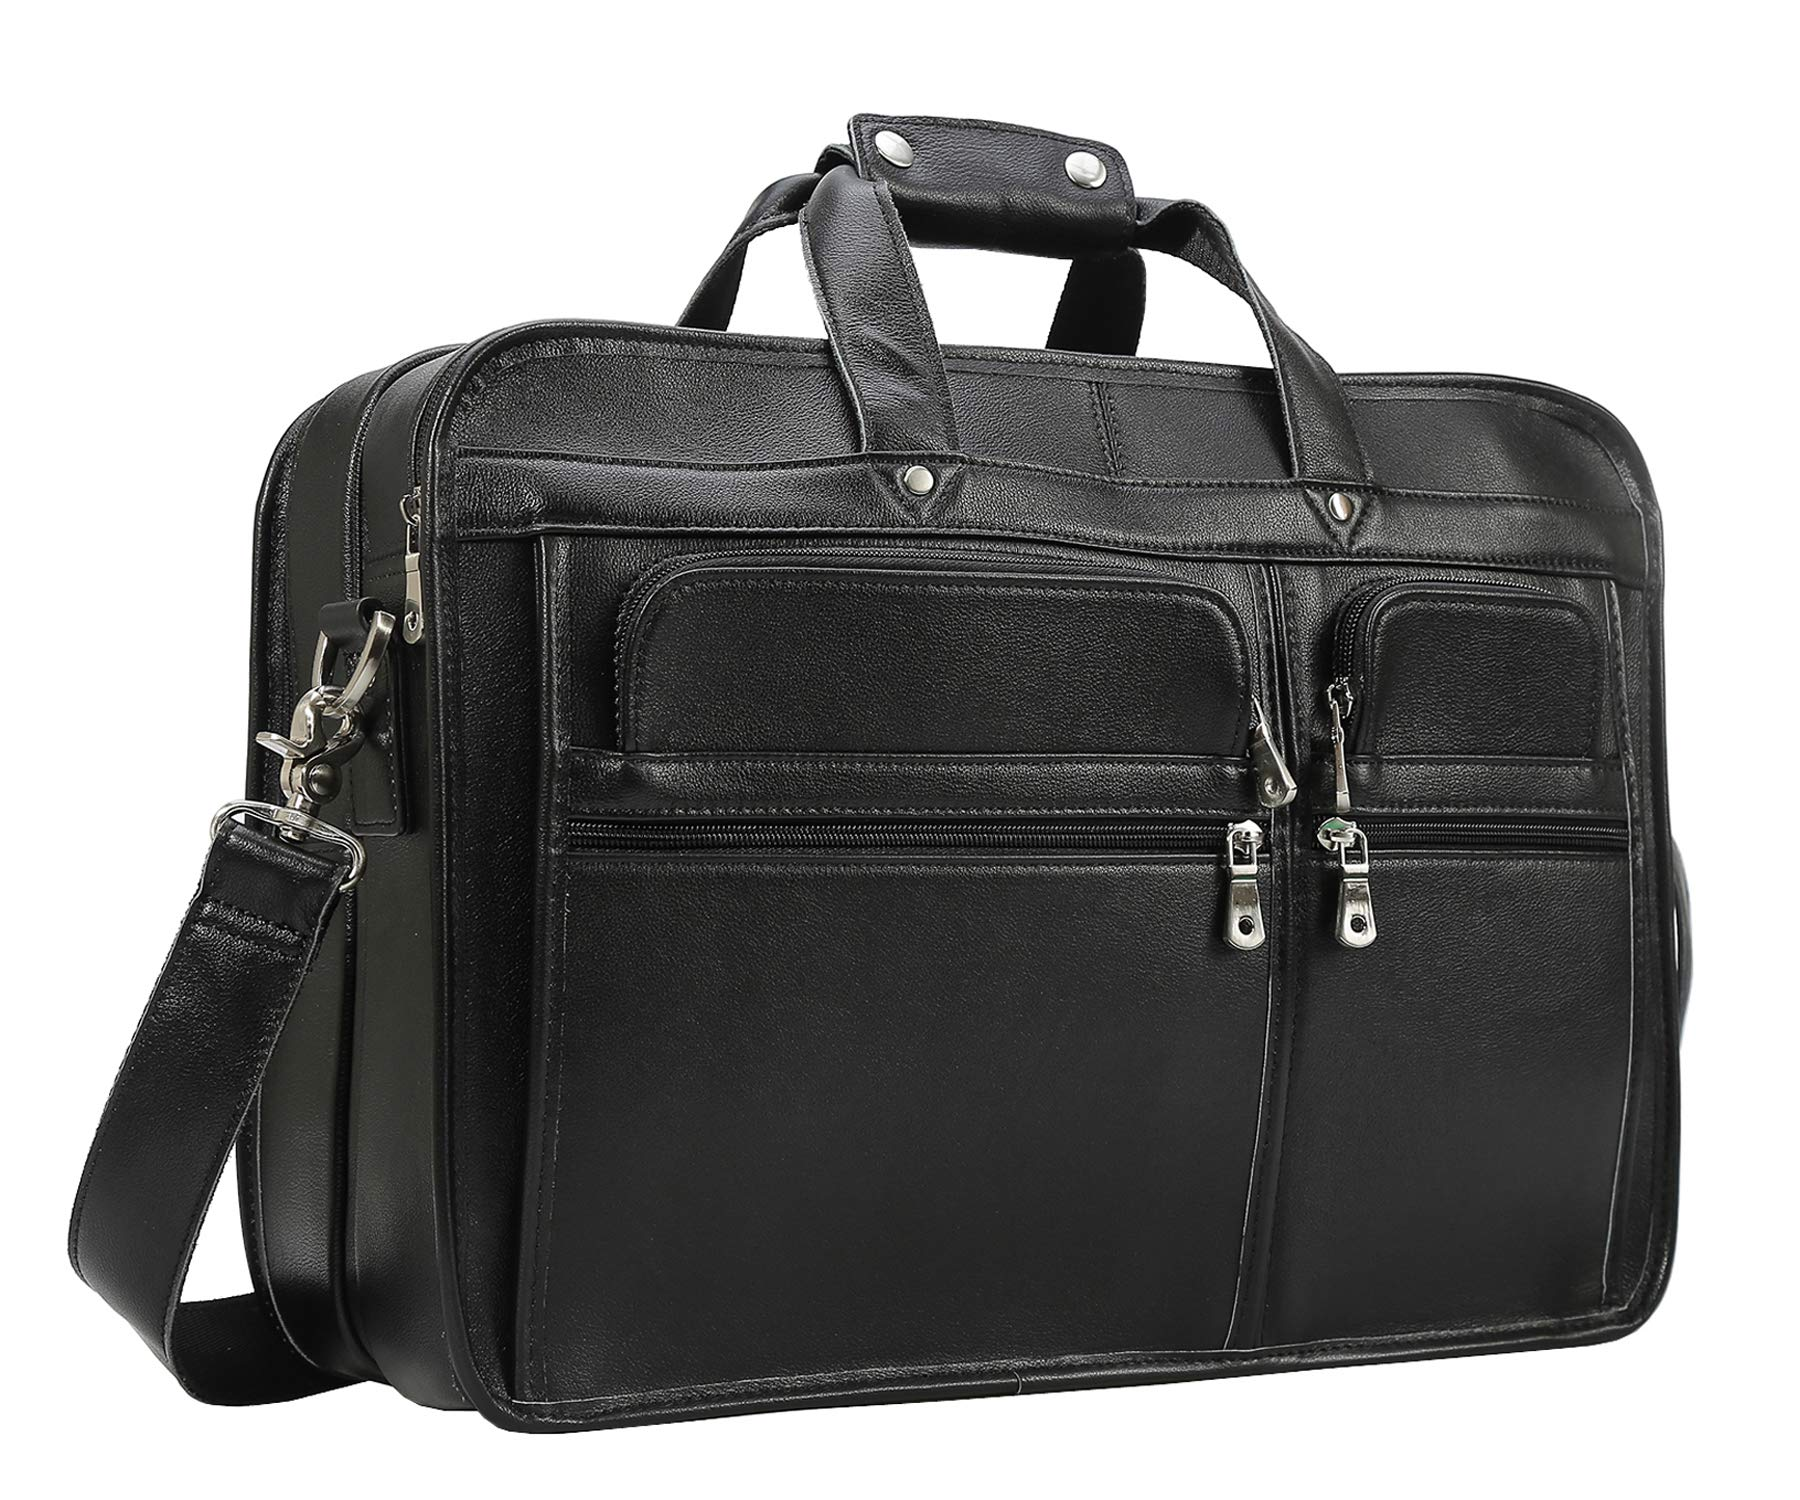 Texbo Men's Solid Full Grain Cowhide Leather Large 17 Inch Laptop Briefcase Messenger Bag Tote (Black -Calfskin Leather)